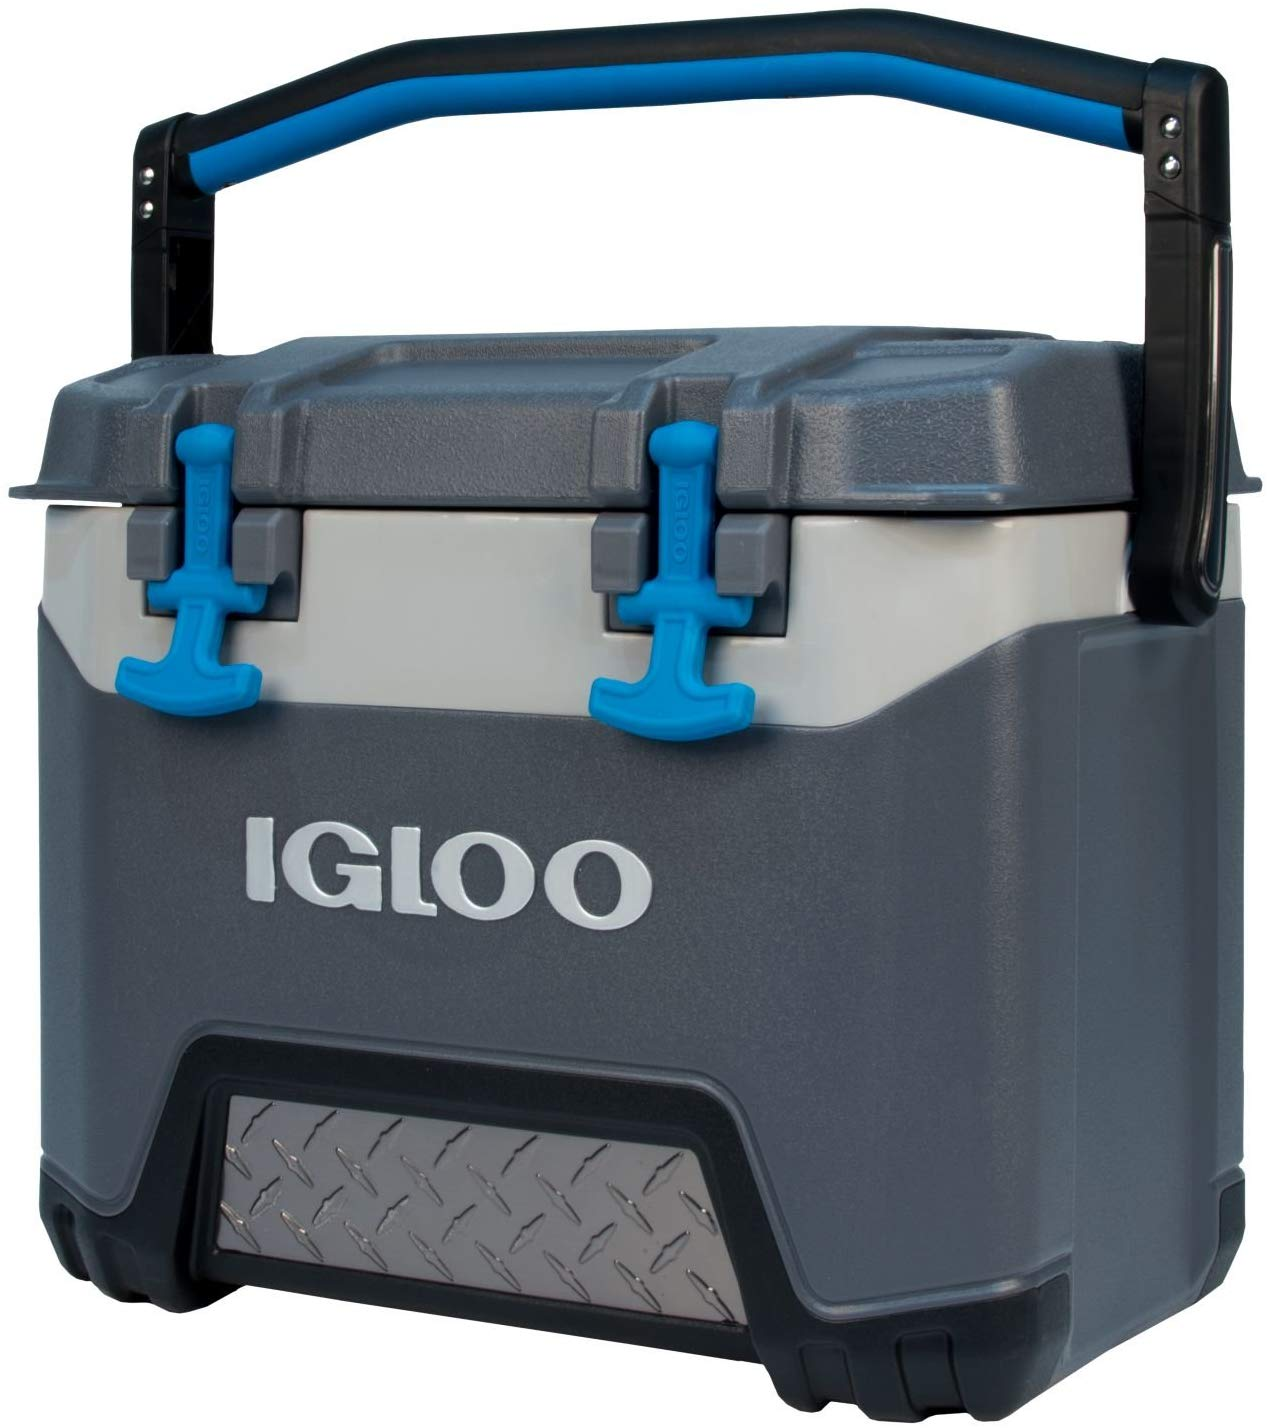 Igloo Cooler, 25 Quart